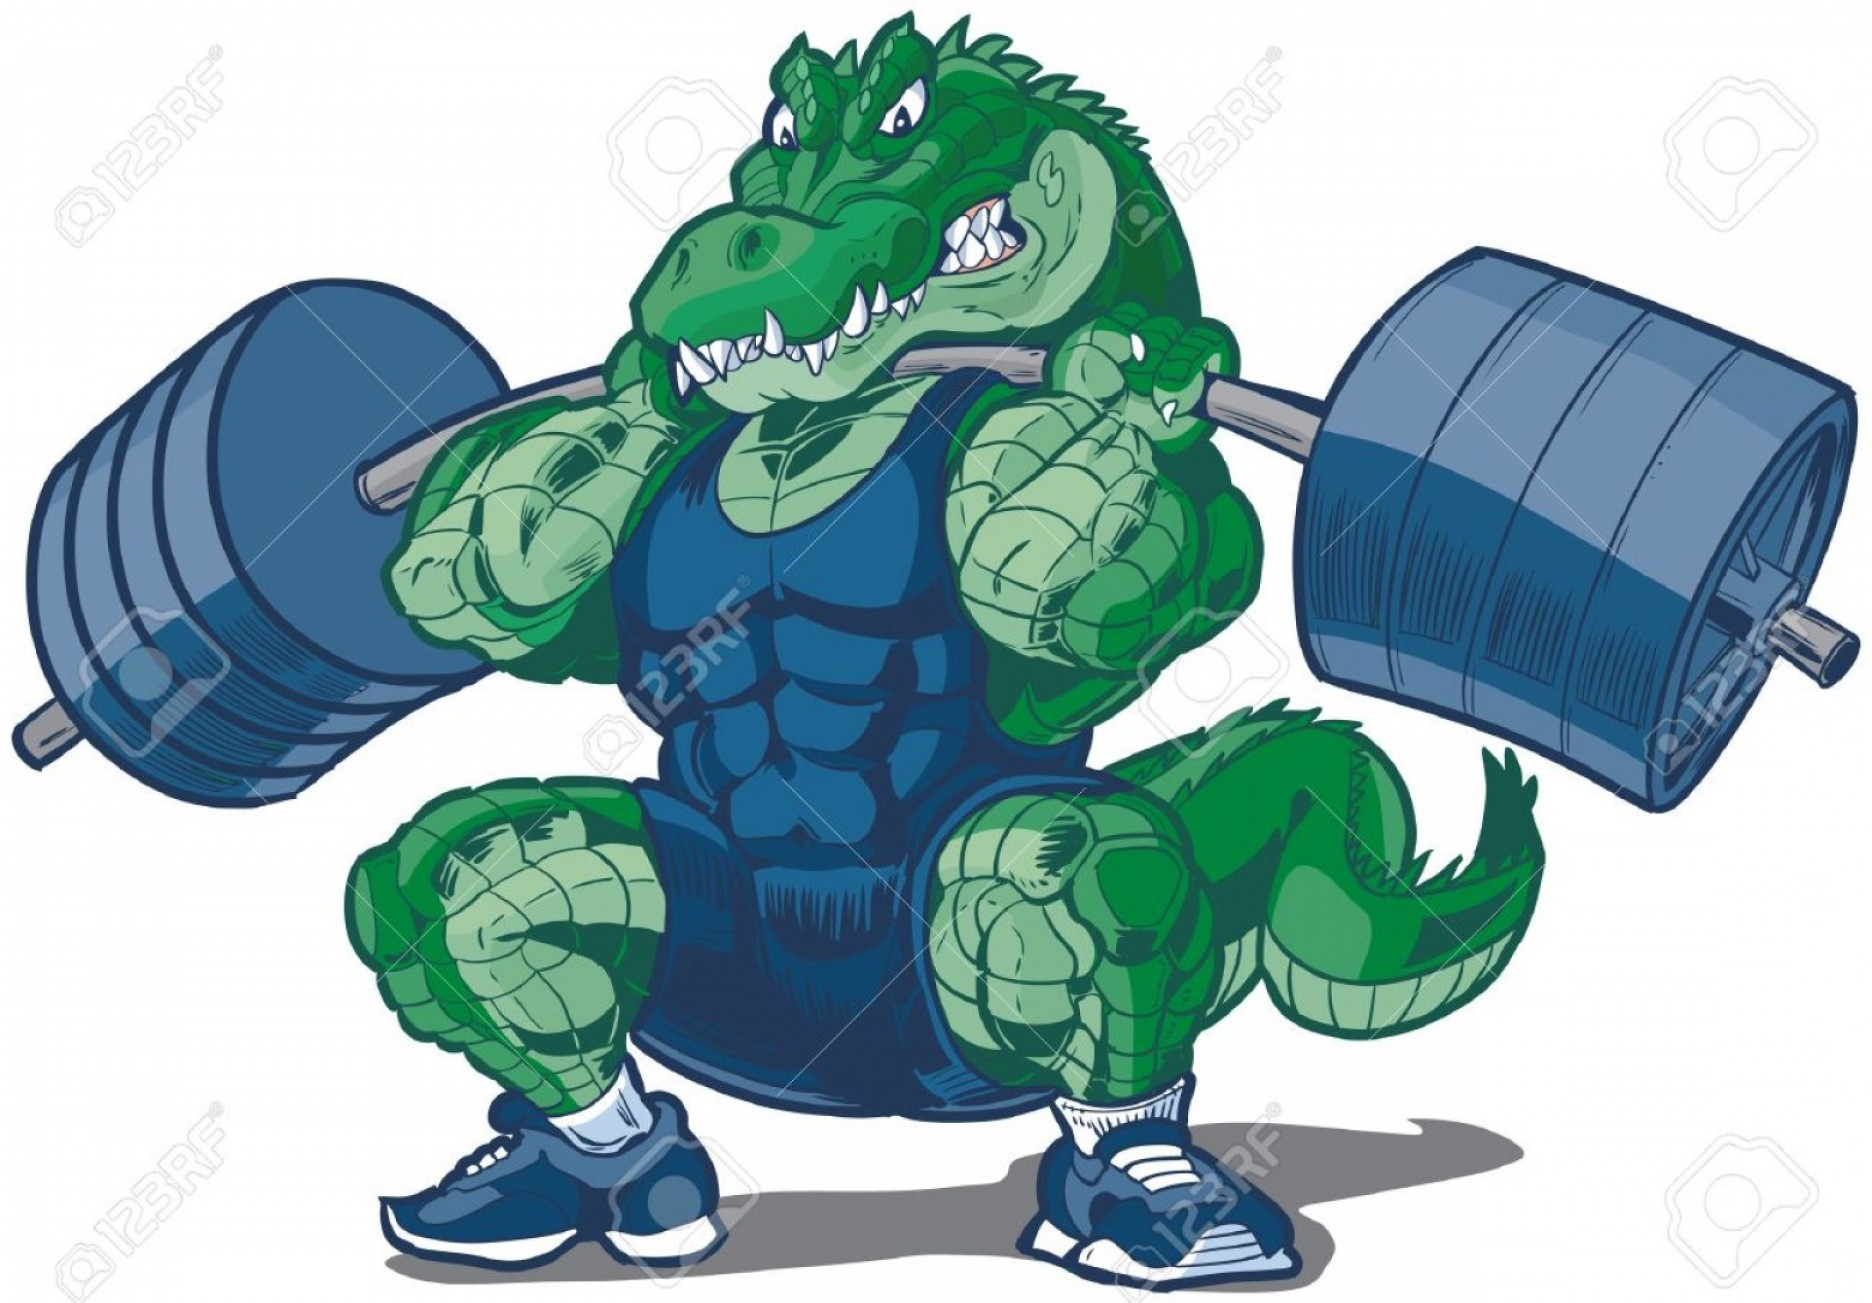 Weight Lifting Vector Graphics: Photostock Vector Vector Cartoon Clip Art Illustration Of A Tough Mean Weightlifting Alligator Or Crocodile Mascot Wea